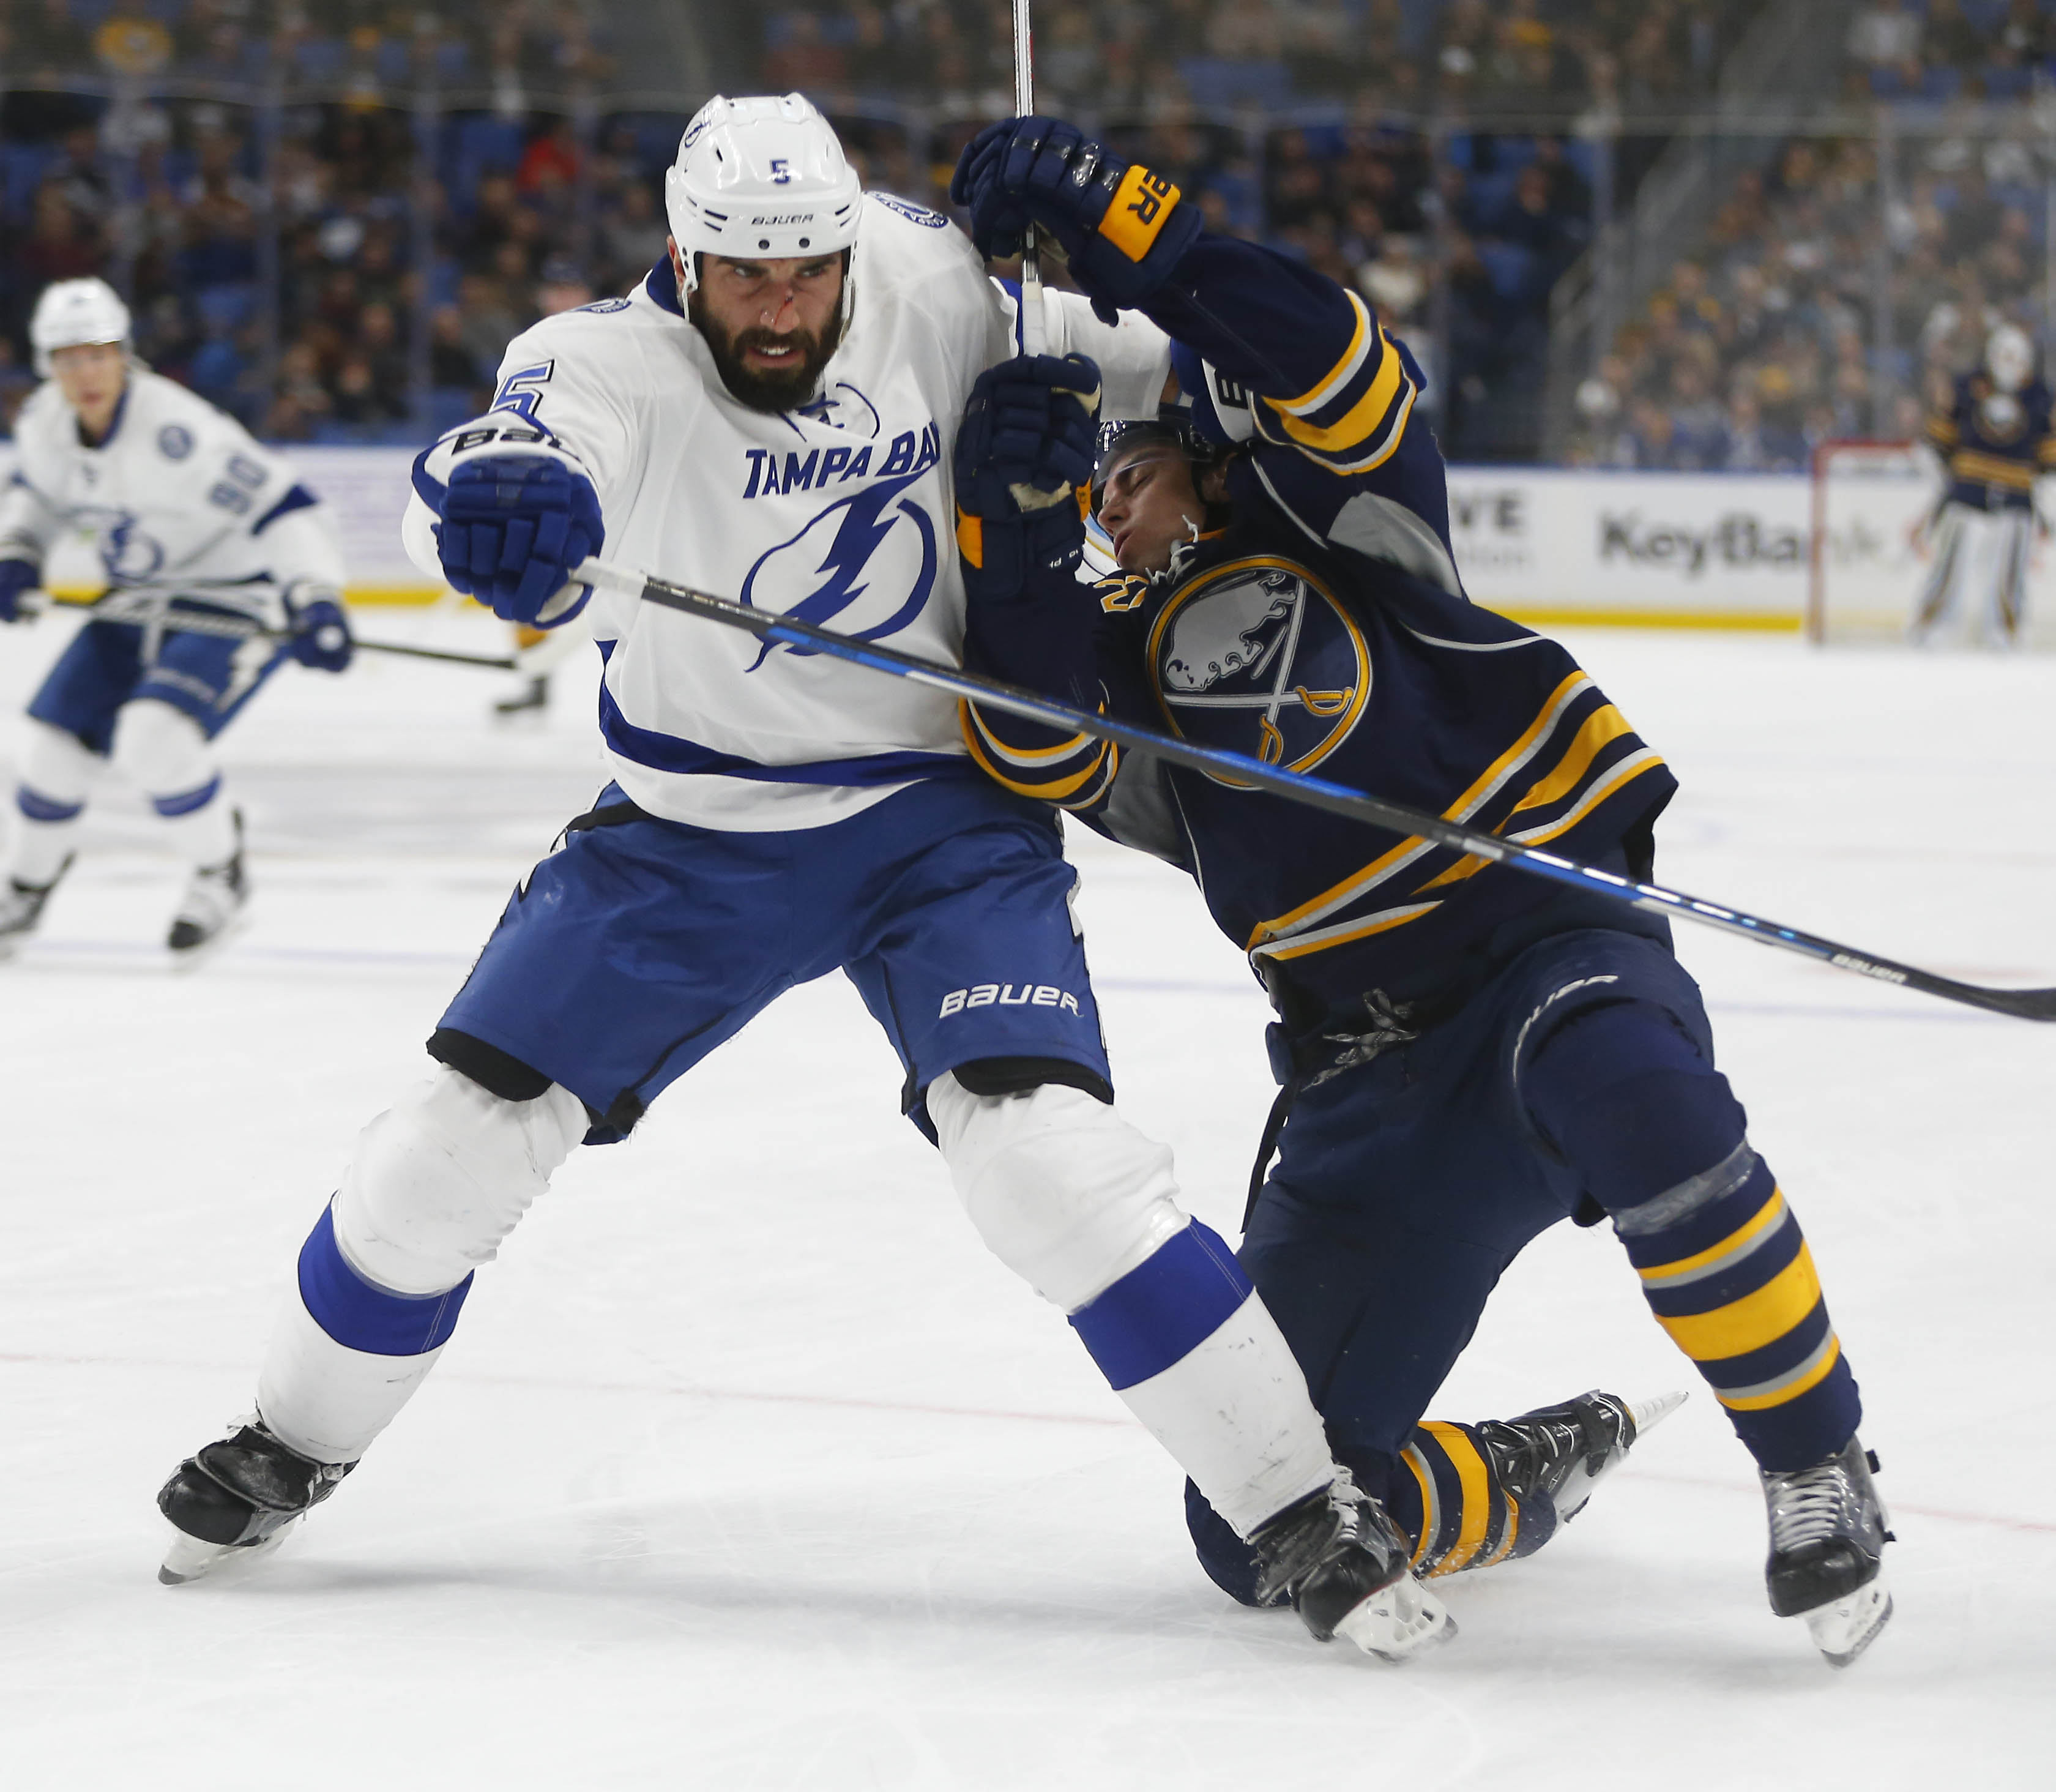 Derek Grant tries to get past Tampa Bay's Jason Garrison in the first period. (Mark Mulville/Buffalo News)